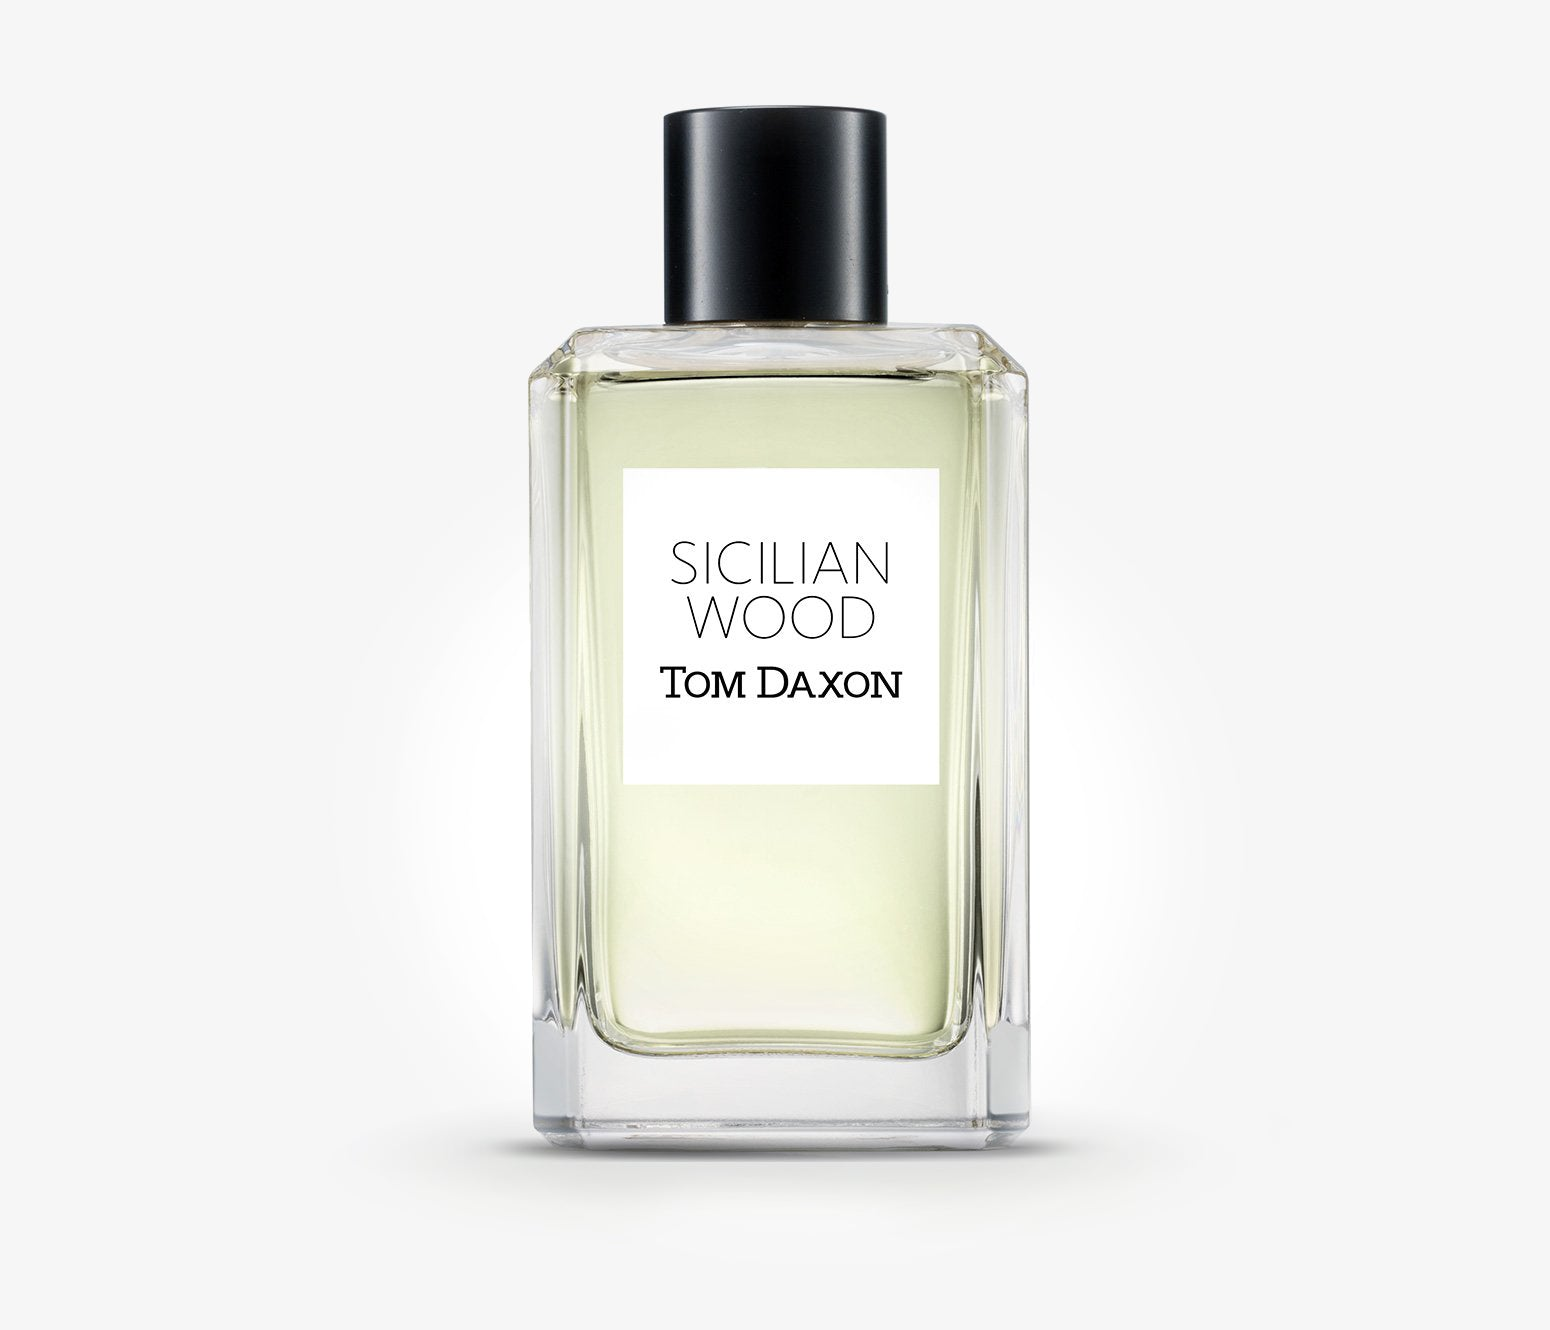 Tom Daxon - Sicilian Wood - 100ml - HOA001 - Product Image - Fragrance - Les Senteurs